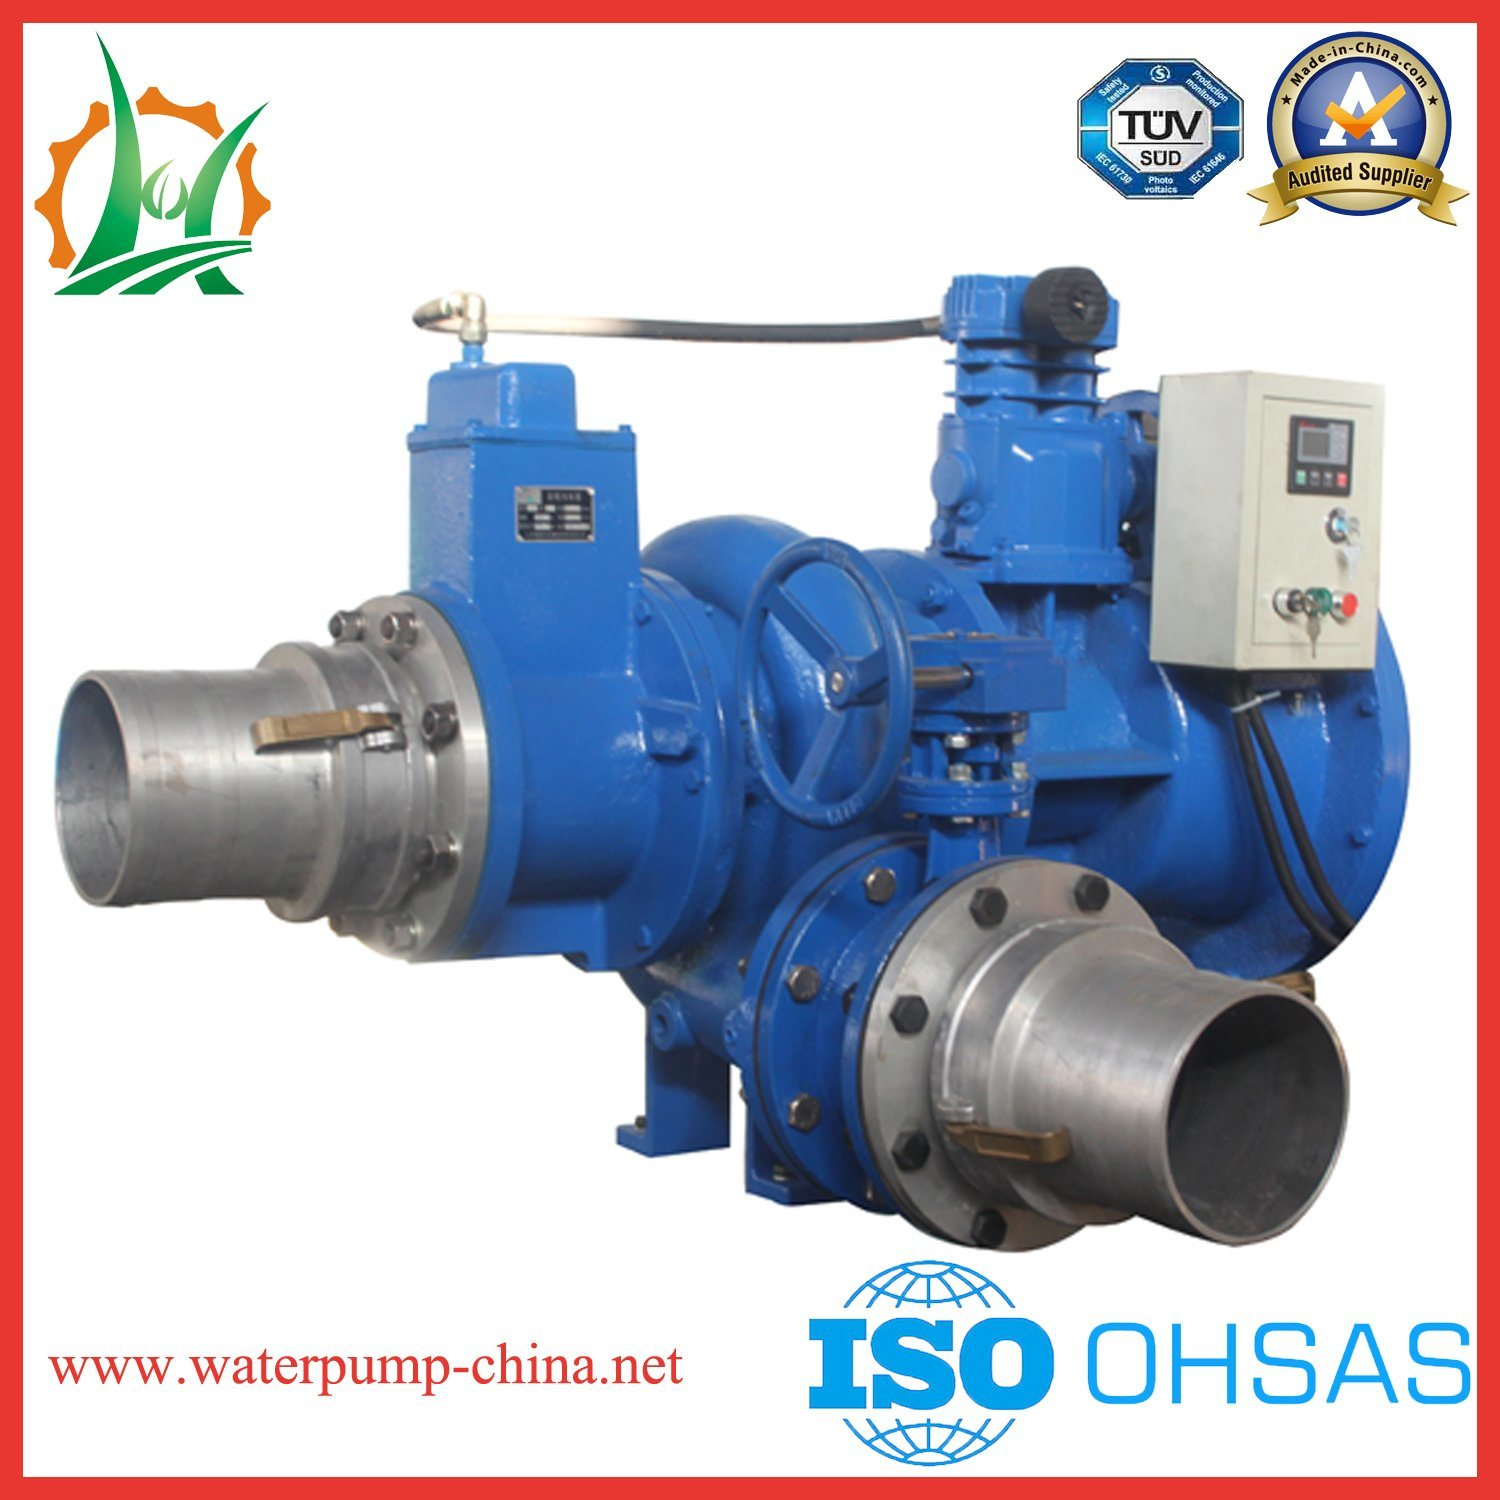 High Pressure Dry Run Self-Priming Diesel Water Pump for Drainage pictures & photos